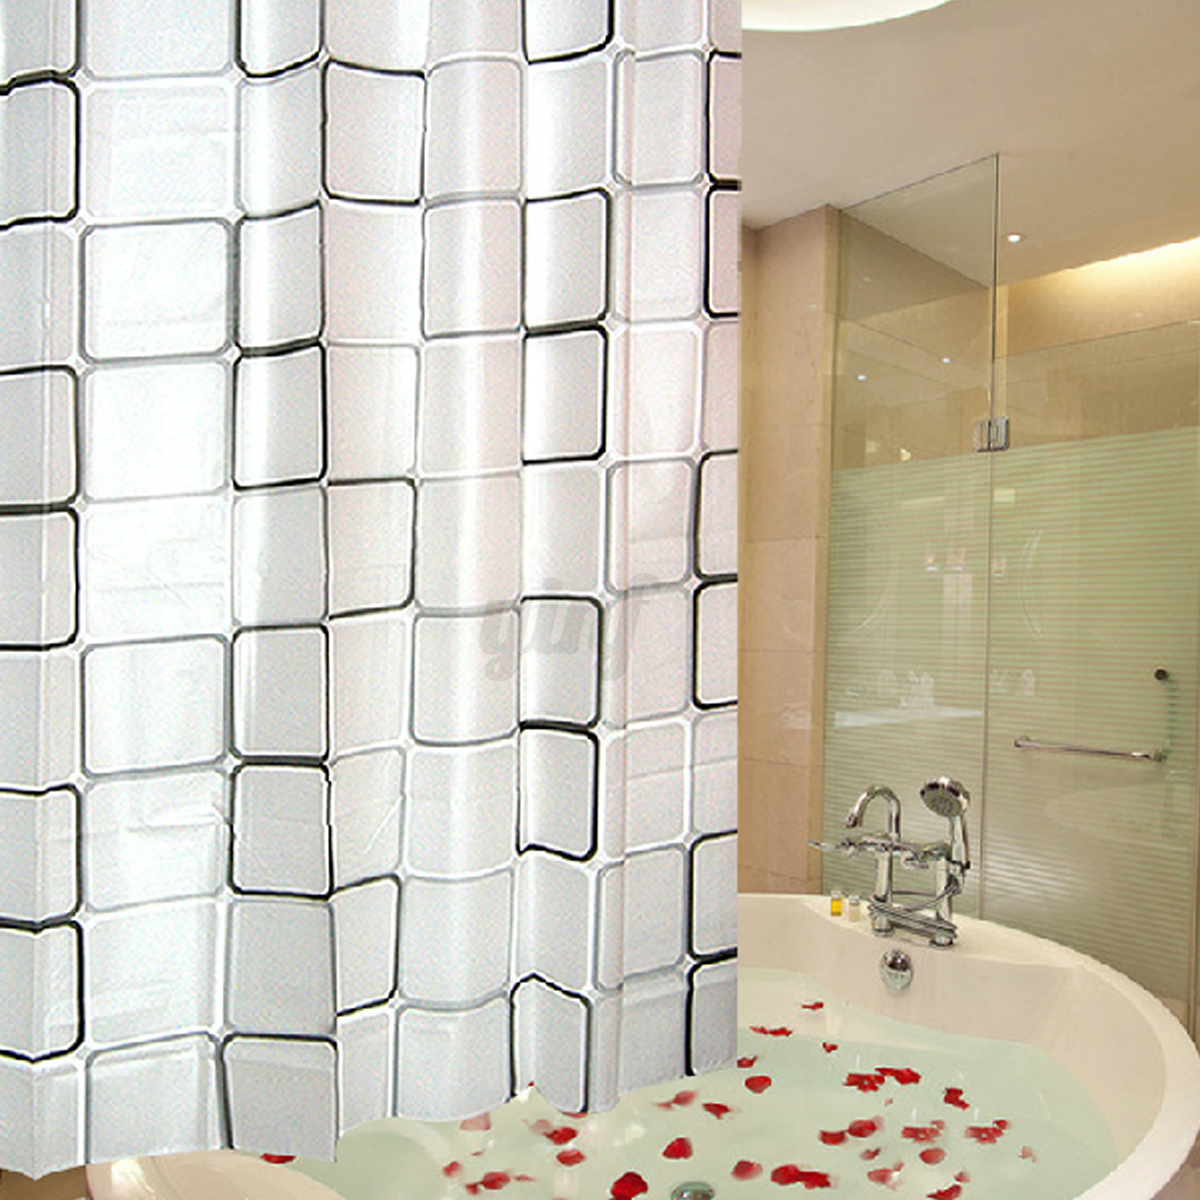 Luxury Modern Bathroom Shower Curtains Extra Long With Hooks 180 X 200cm Ebay